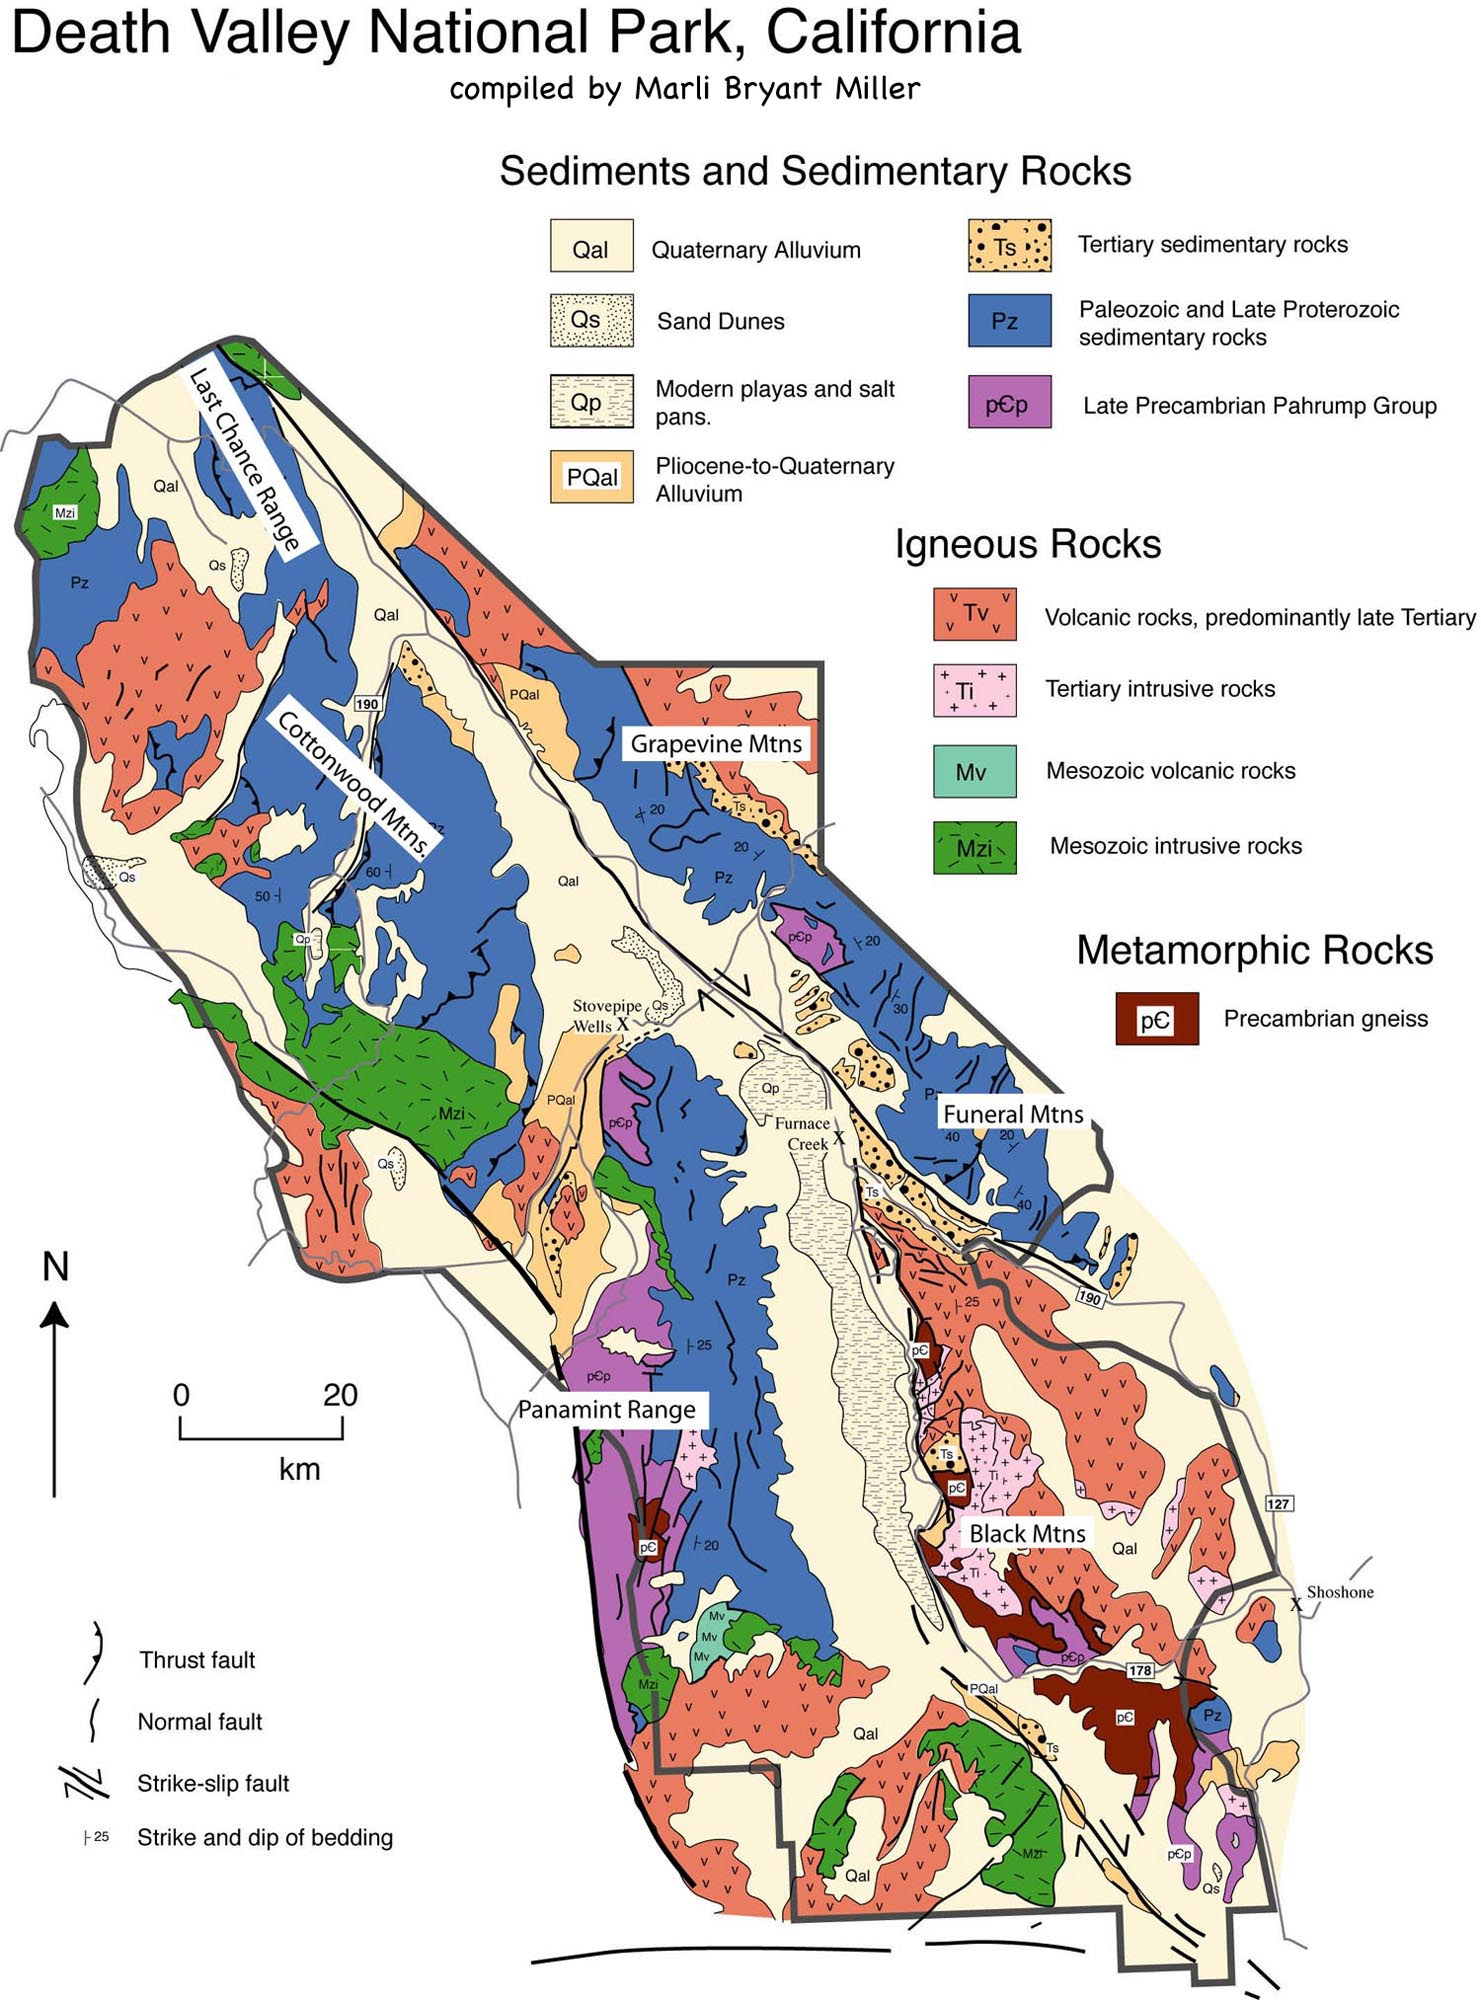 California Map Of National Parks.Geologic Map Of Death Valley National Park California